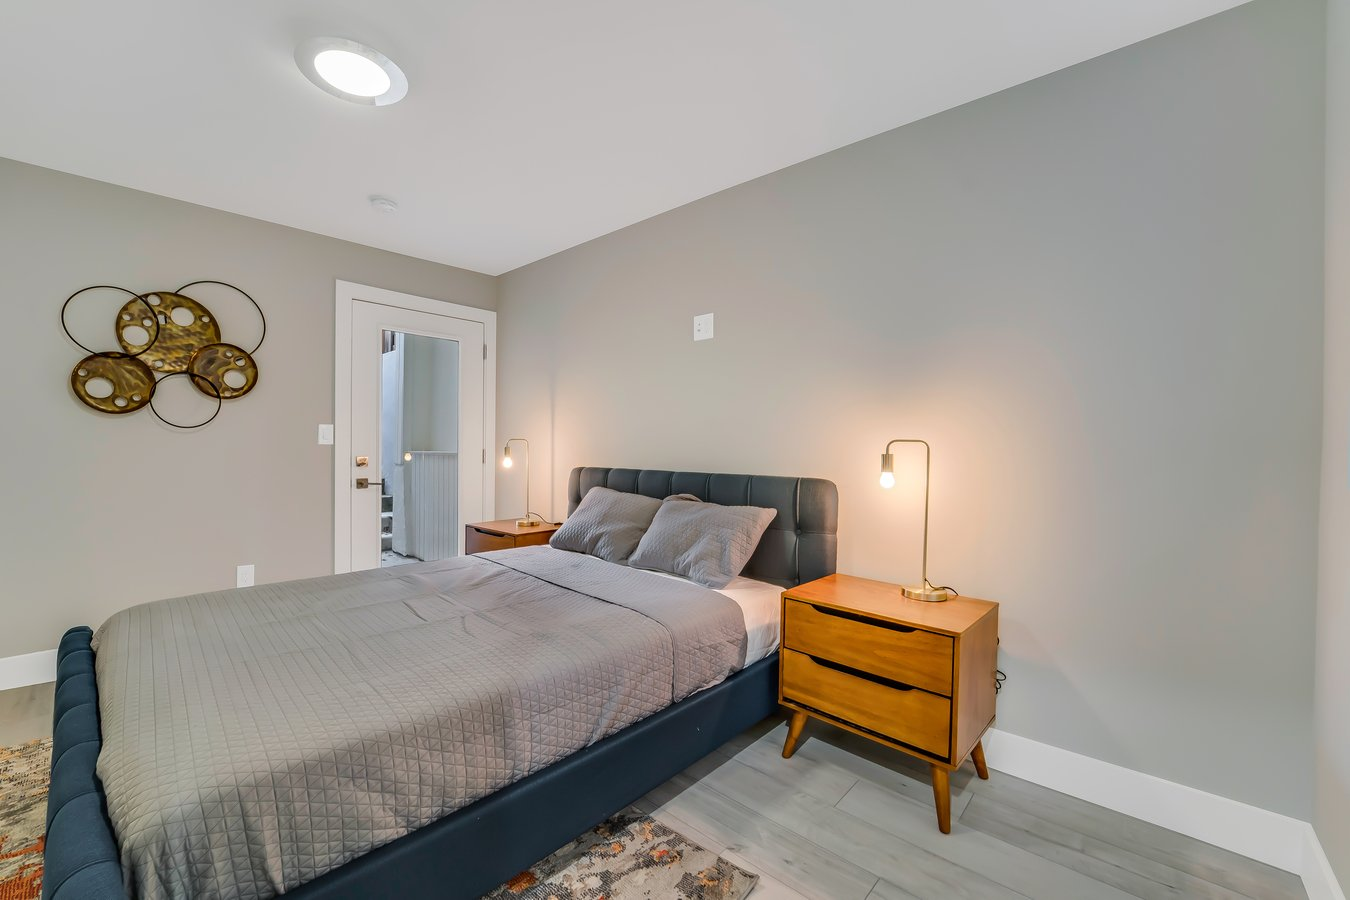 1 Bedroom 1 Bathroom House for rent at 11Th Ave & Noriega St Coliving in San Francisco, CA